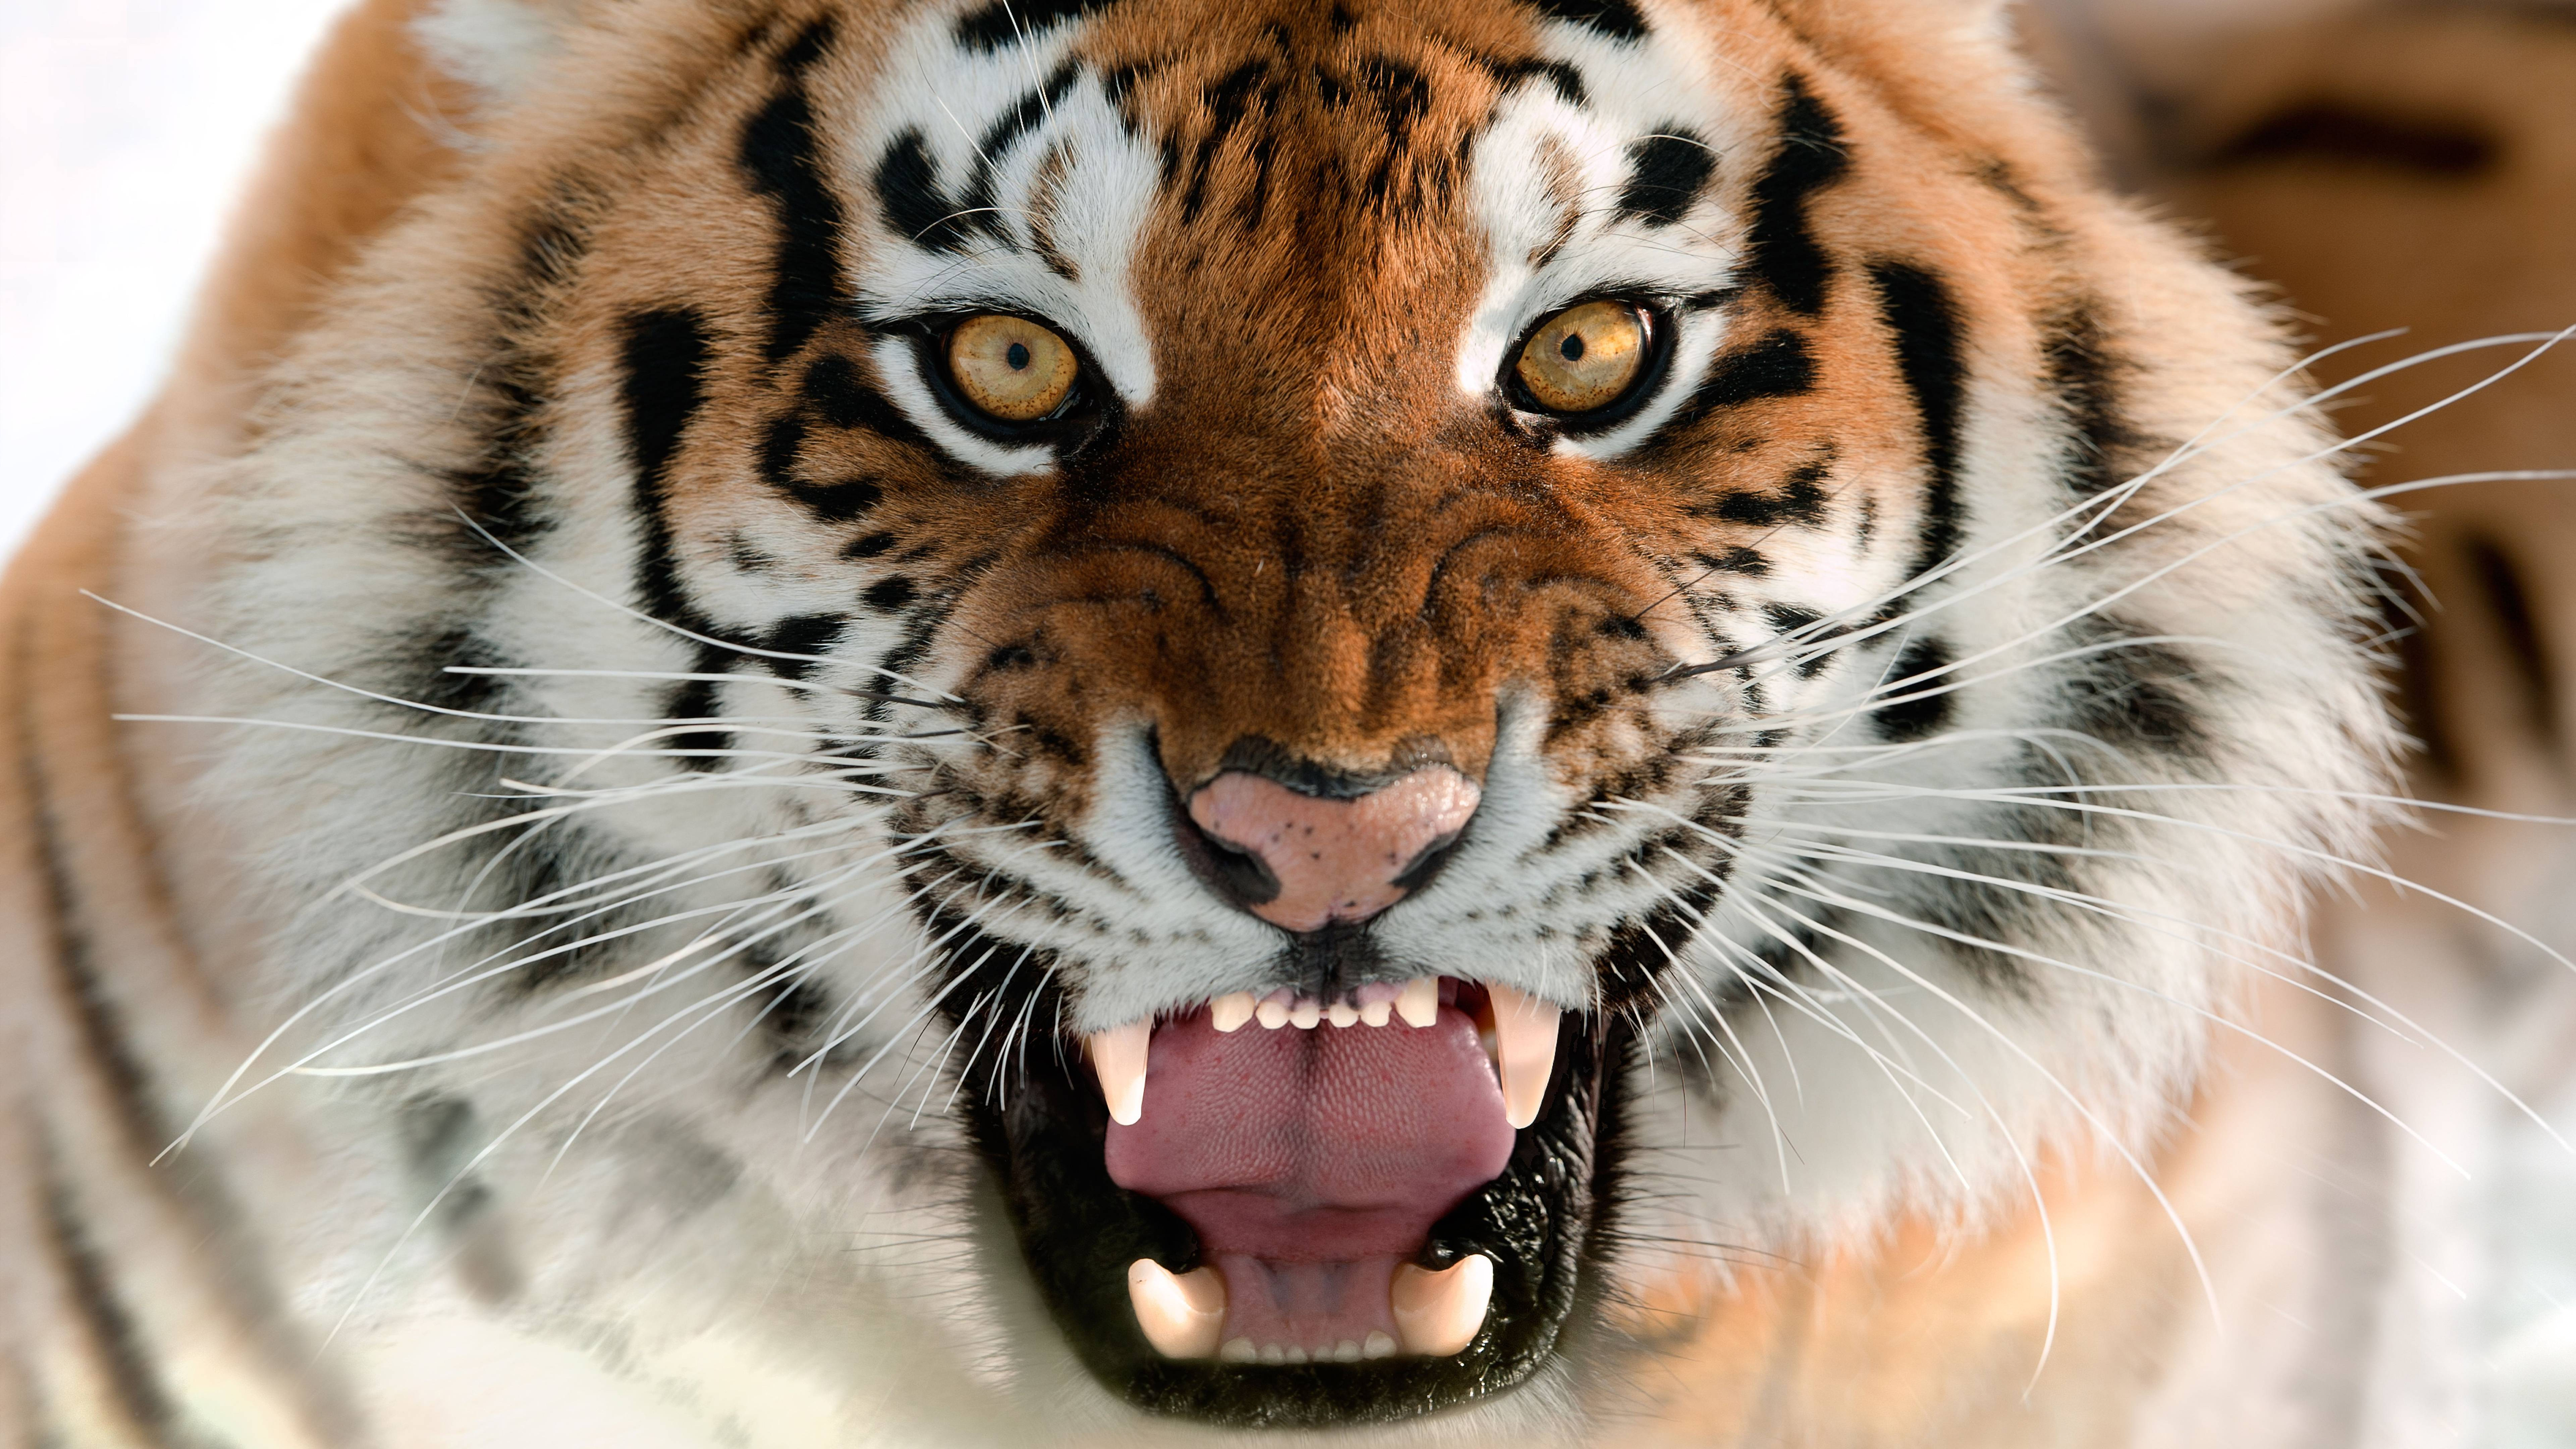 8k Tiger Uhd Wallpapers Top Free 8k Tiger Uhd Backgrounds Wallpaperaccess